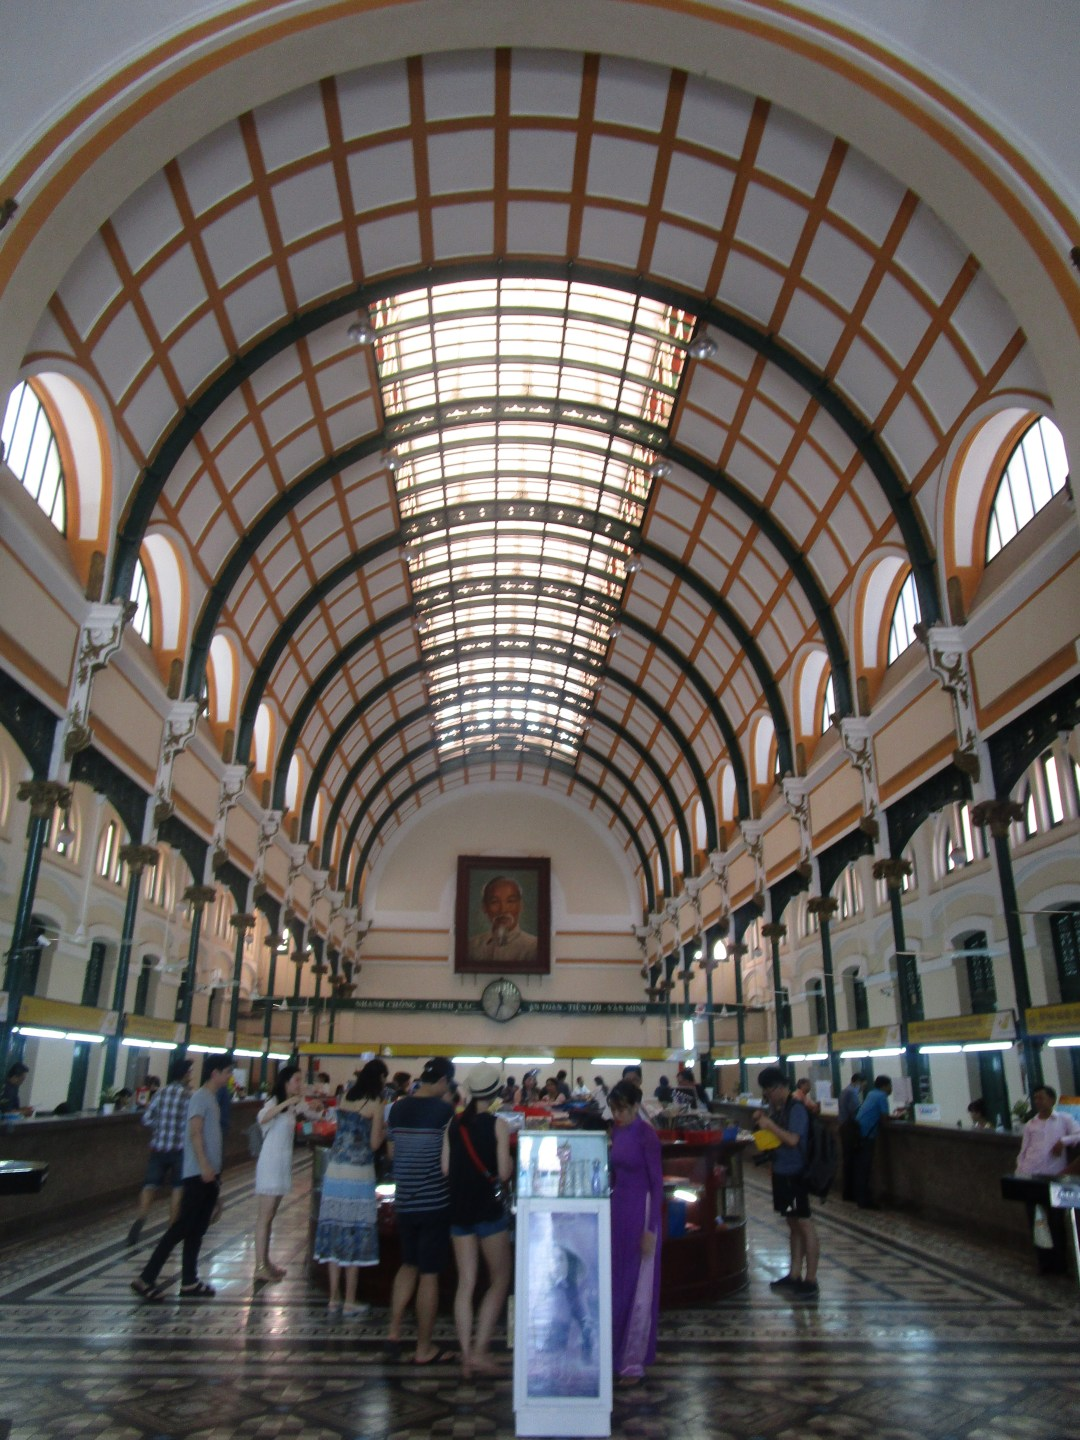 Interiors of the wonderful post office of Ho Chi Minh City